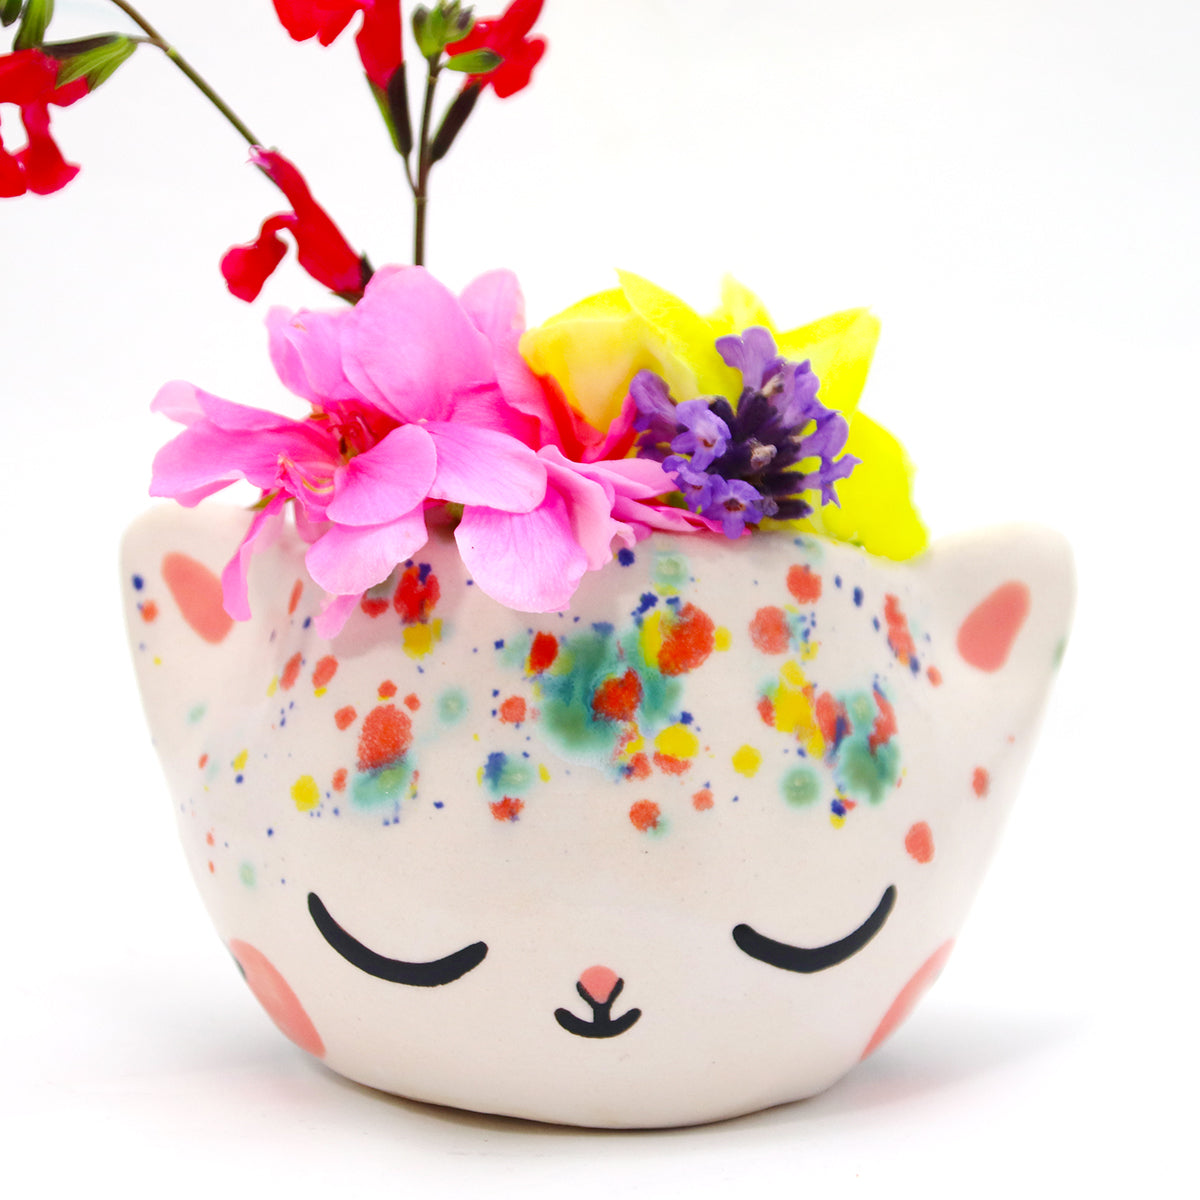 Ceramic Kitty Planter #1142 - L